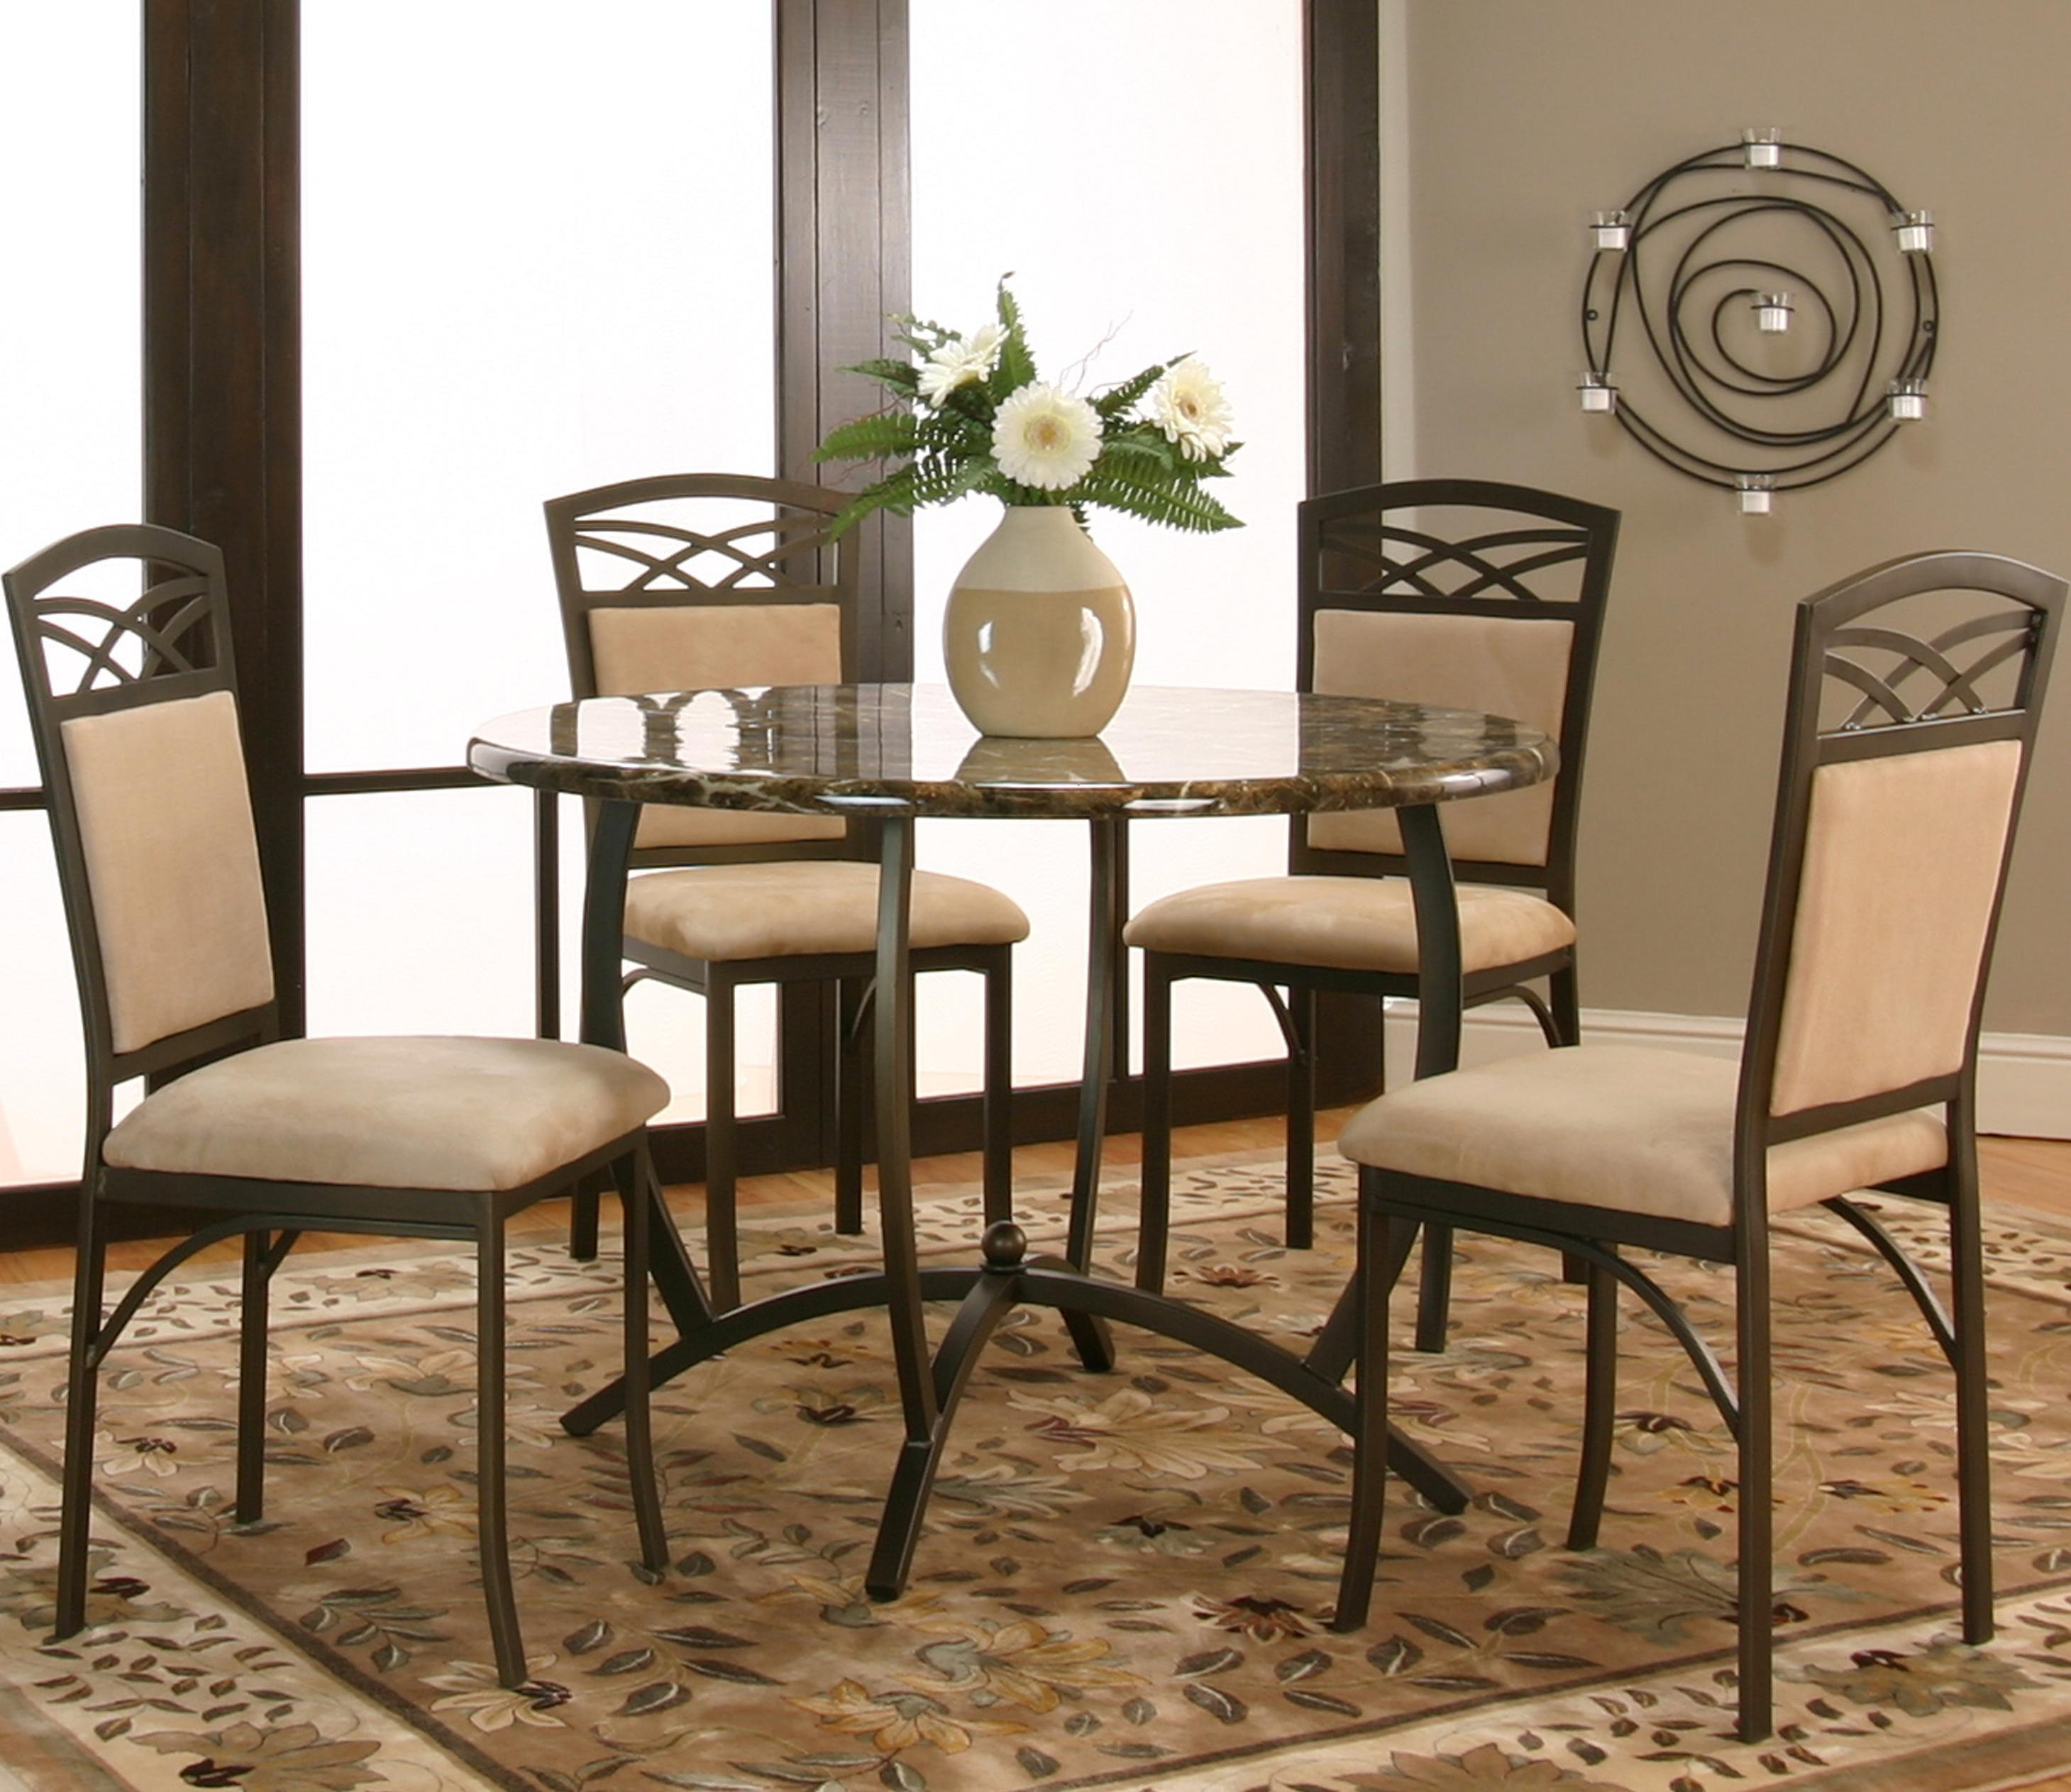 atlas tables and chairs swing chair pakistan cramco inc 5 piece table set johnny